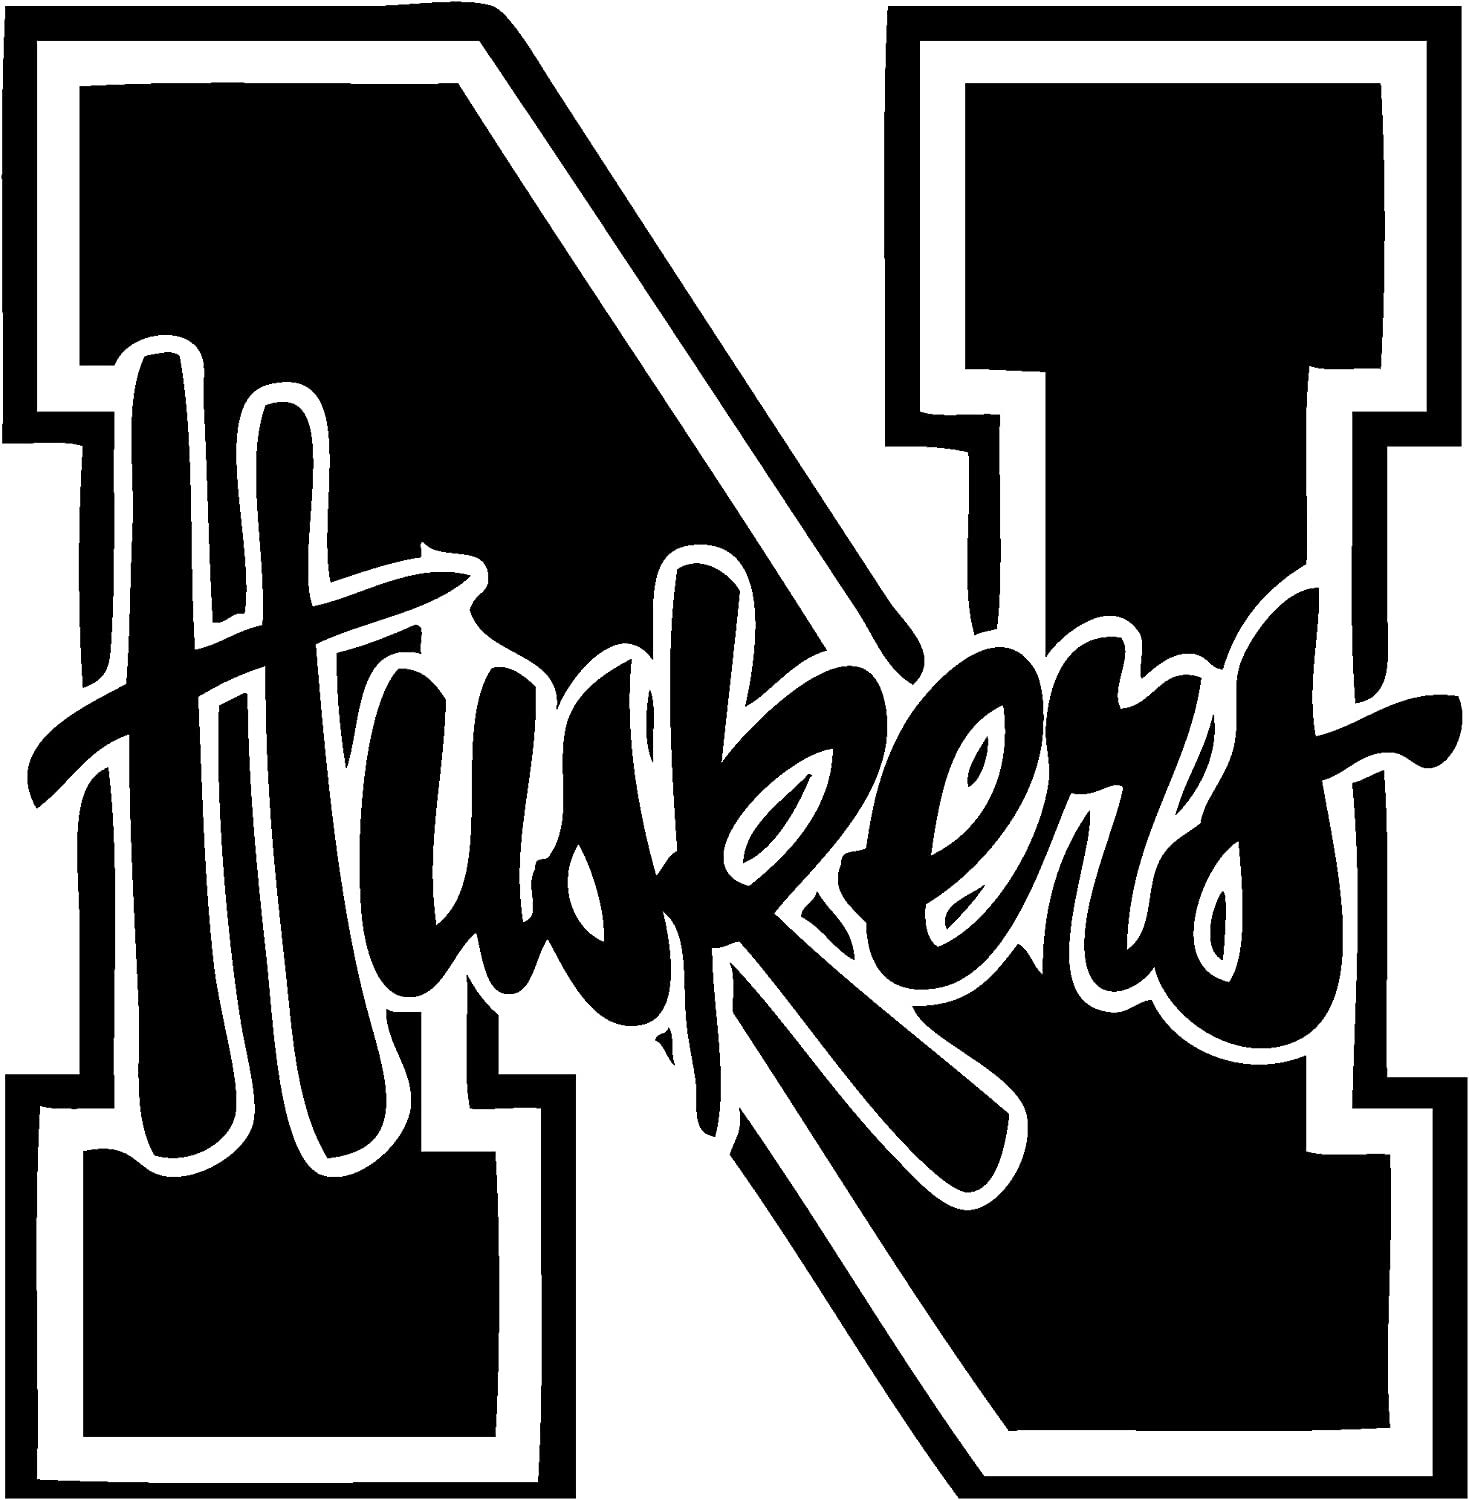 TDT Printing & Custom Decals Nebraska Cornhuskers Vinyl Decal Sticker for Car or Truck Windows, Laptops etc.